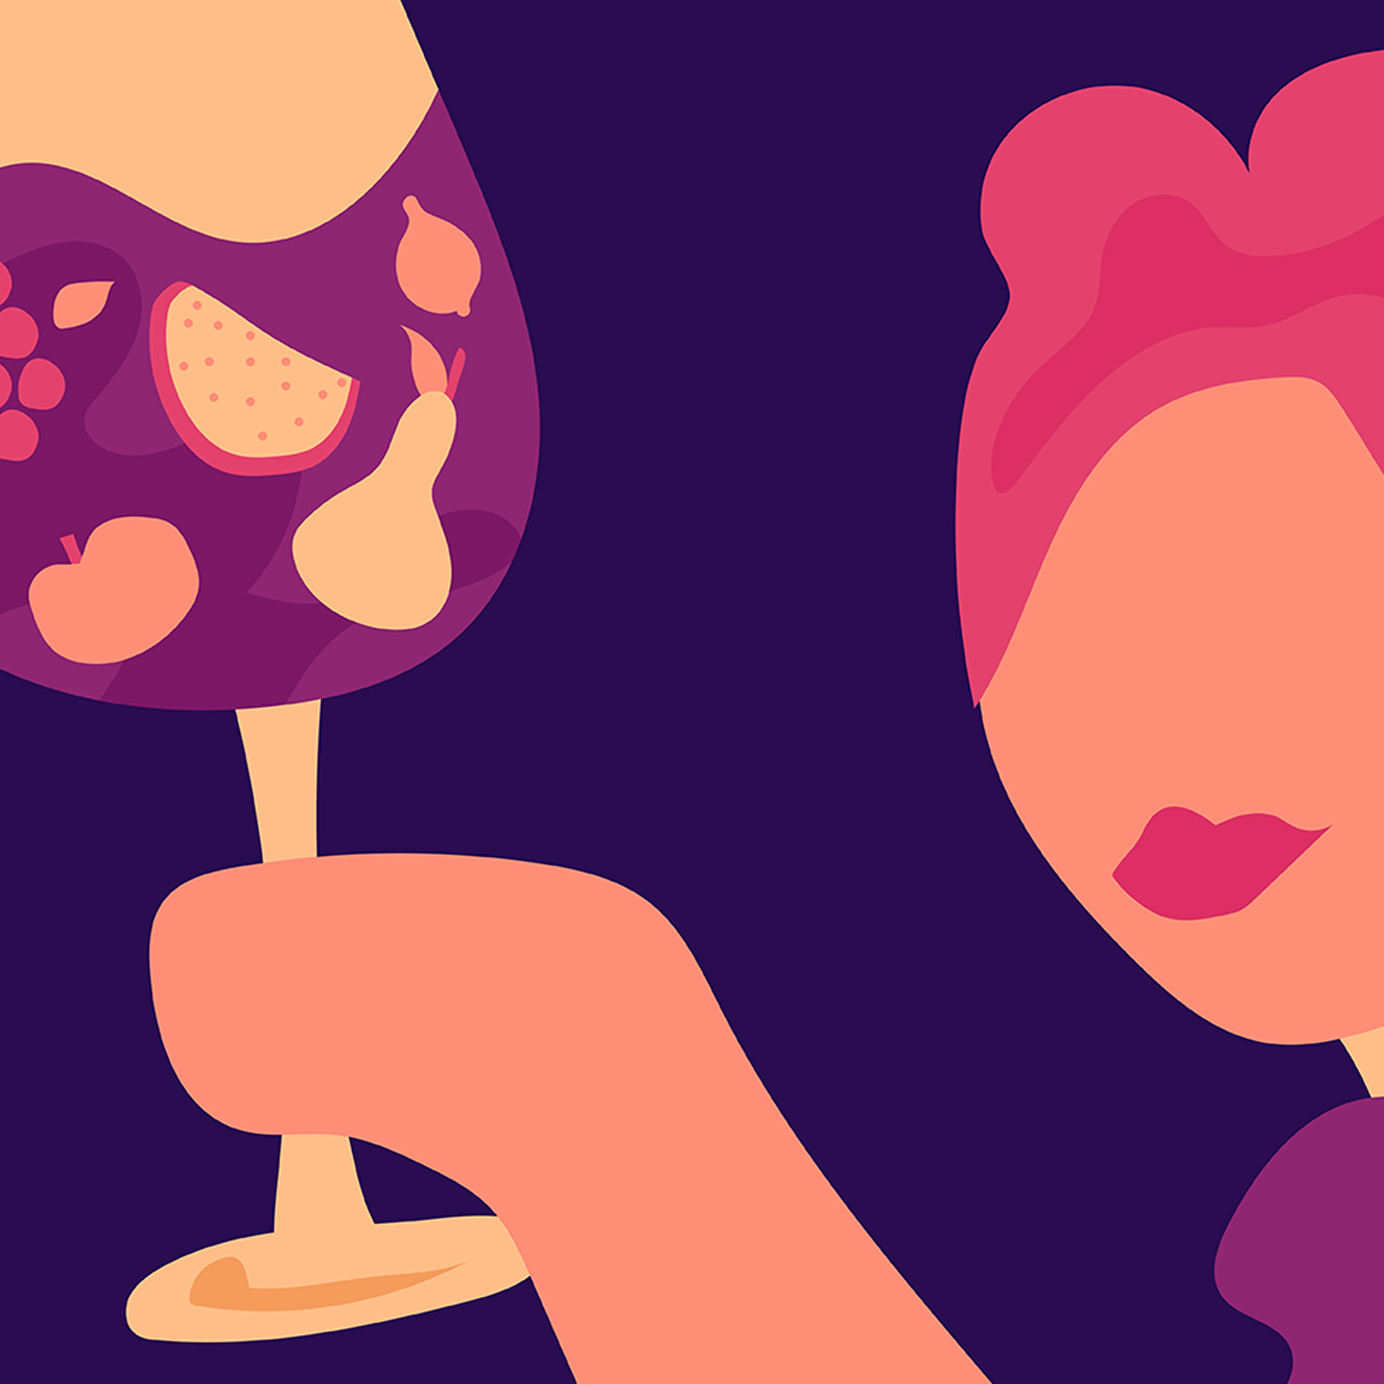 How to Get the Most Out of Every Wine Tasting, According to.